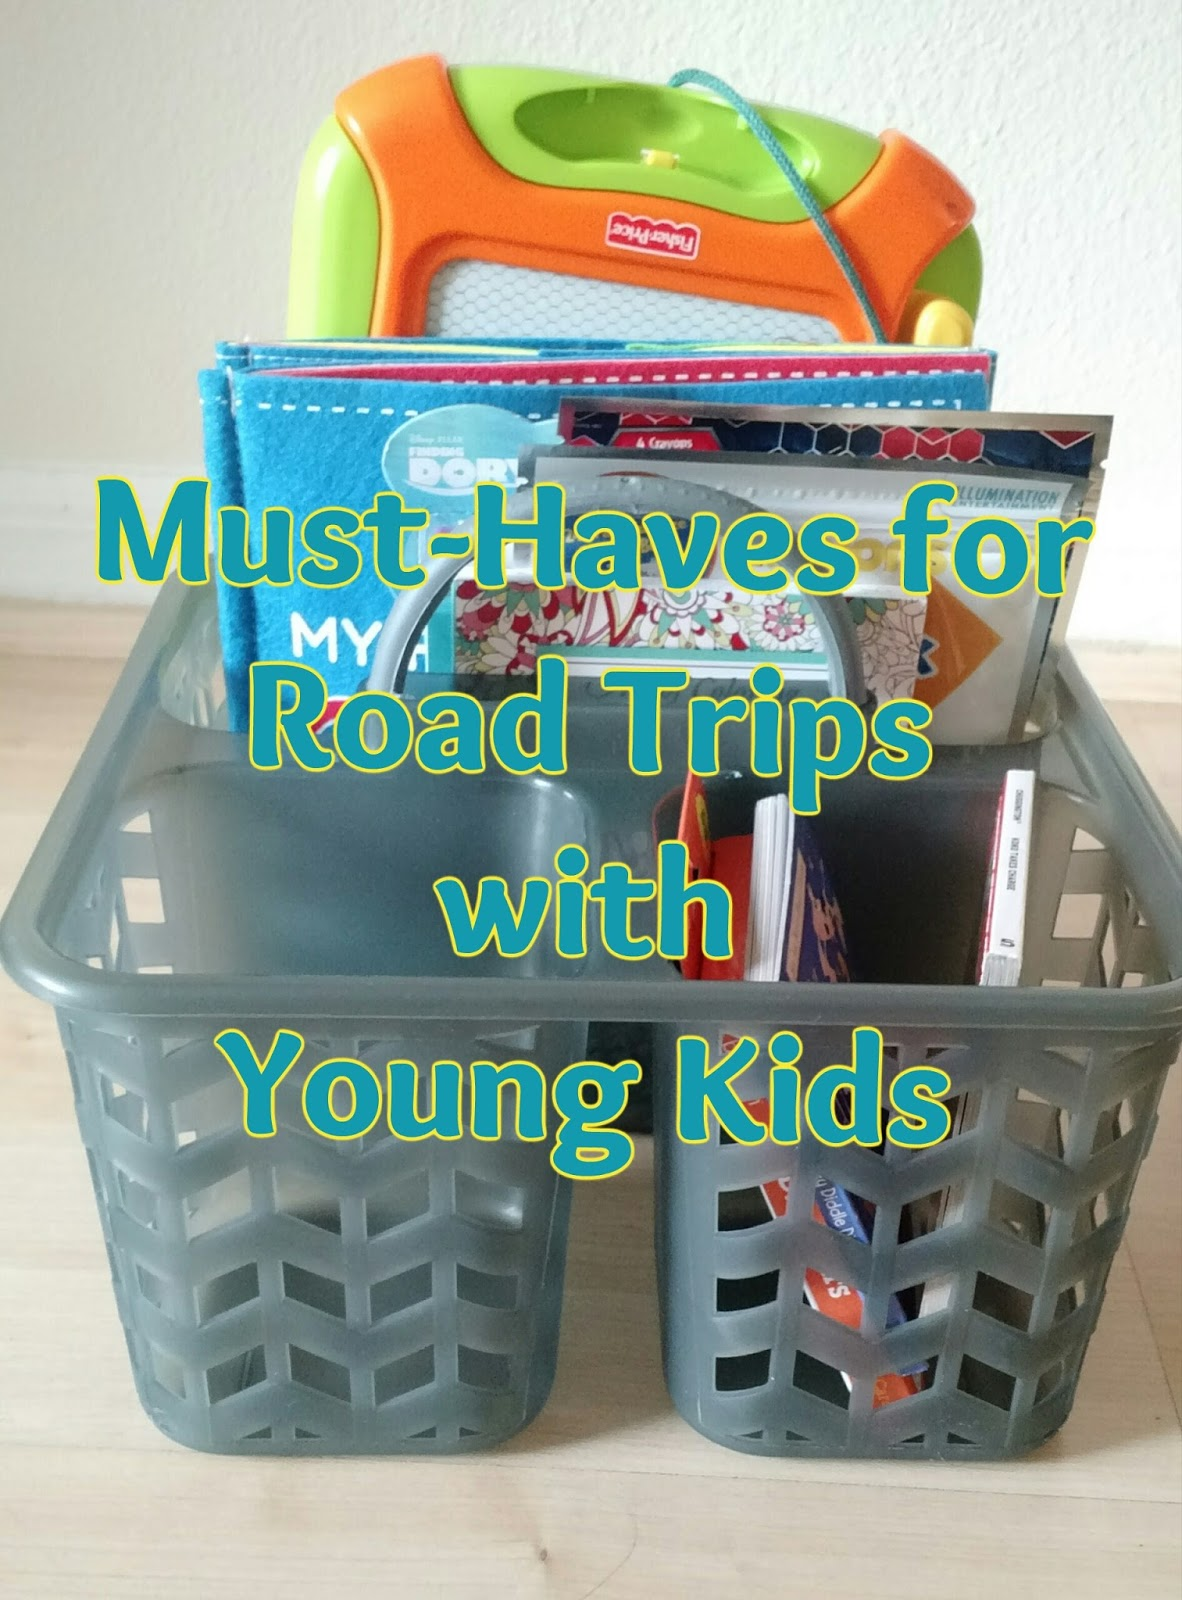 mommy diaries (of a florida mom): must-haves for road trips with